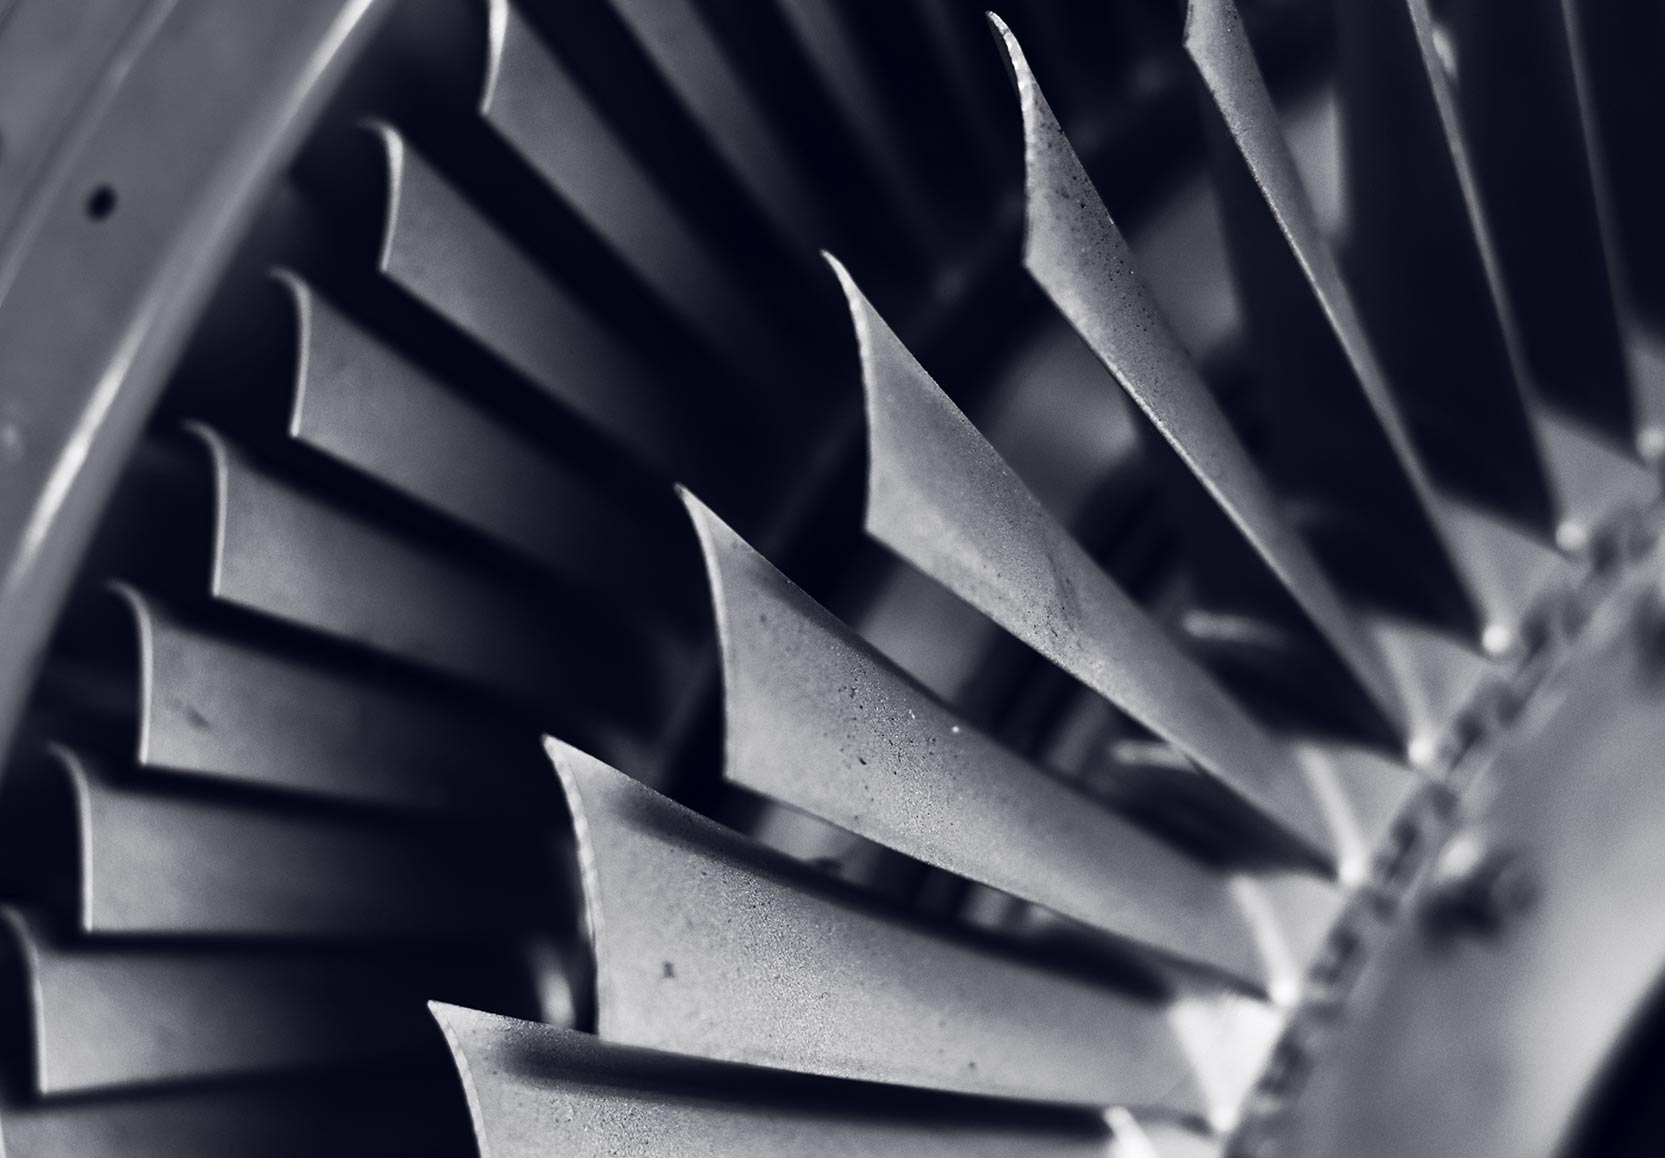 Circular Metal Blades Graphic